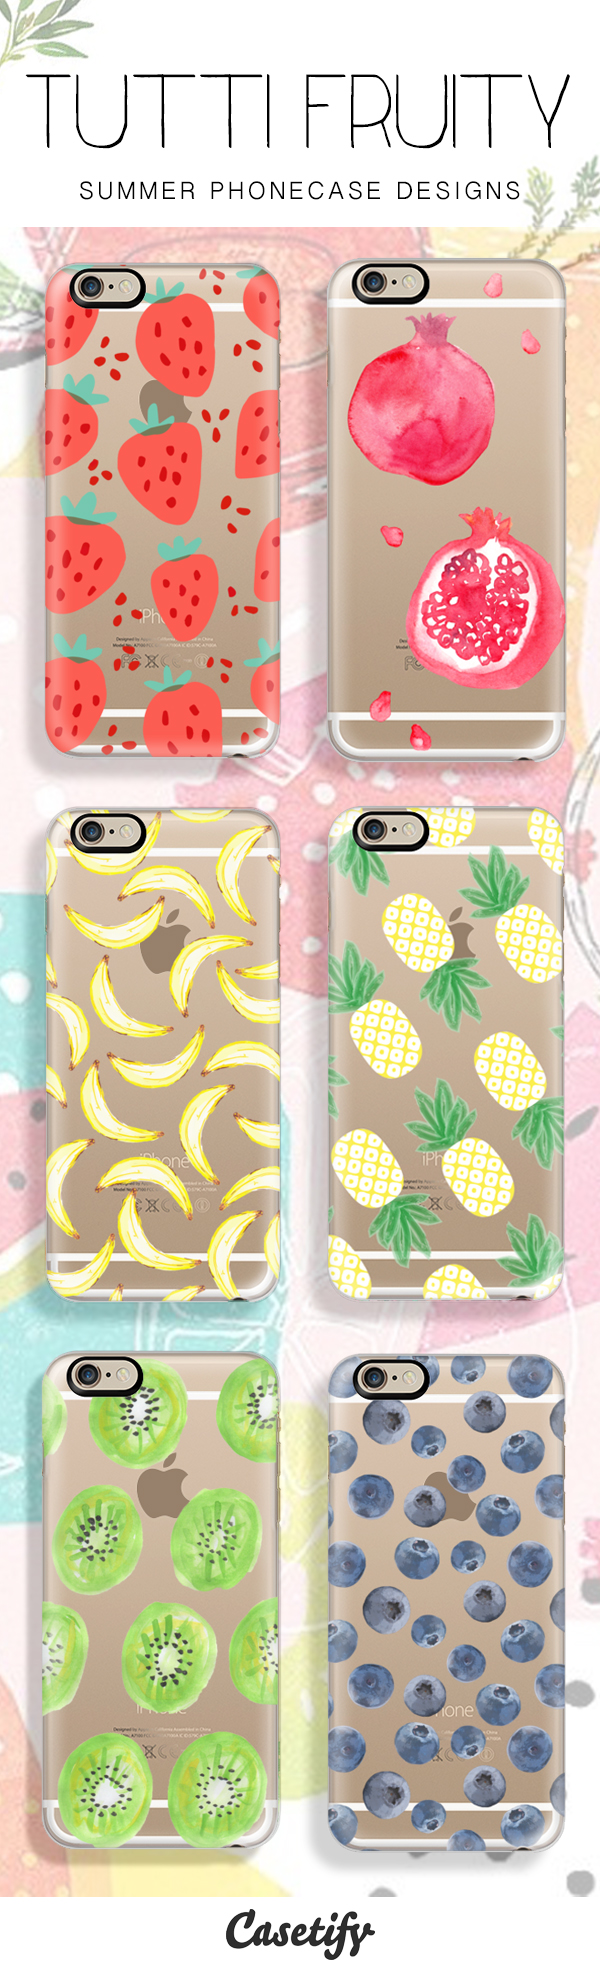 Flavourful-Ways-to-Liven-Up-Your-Summer-from-sweet-strawberries-to-juicy-pineapples-we-have-it-a-wallpaper-wp425455